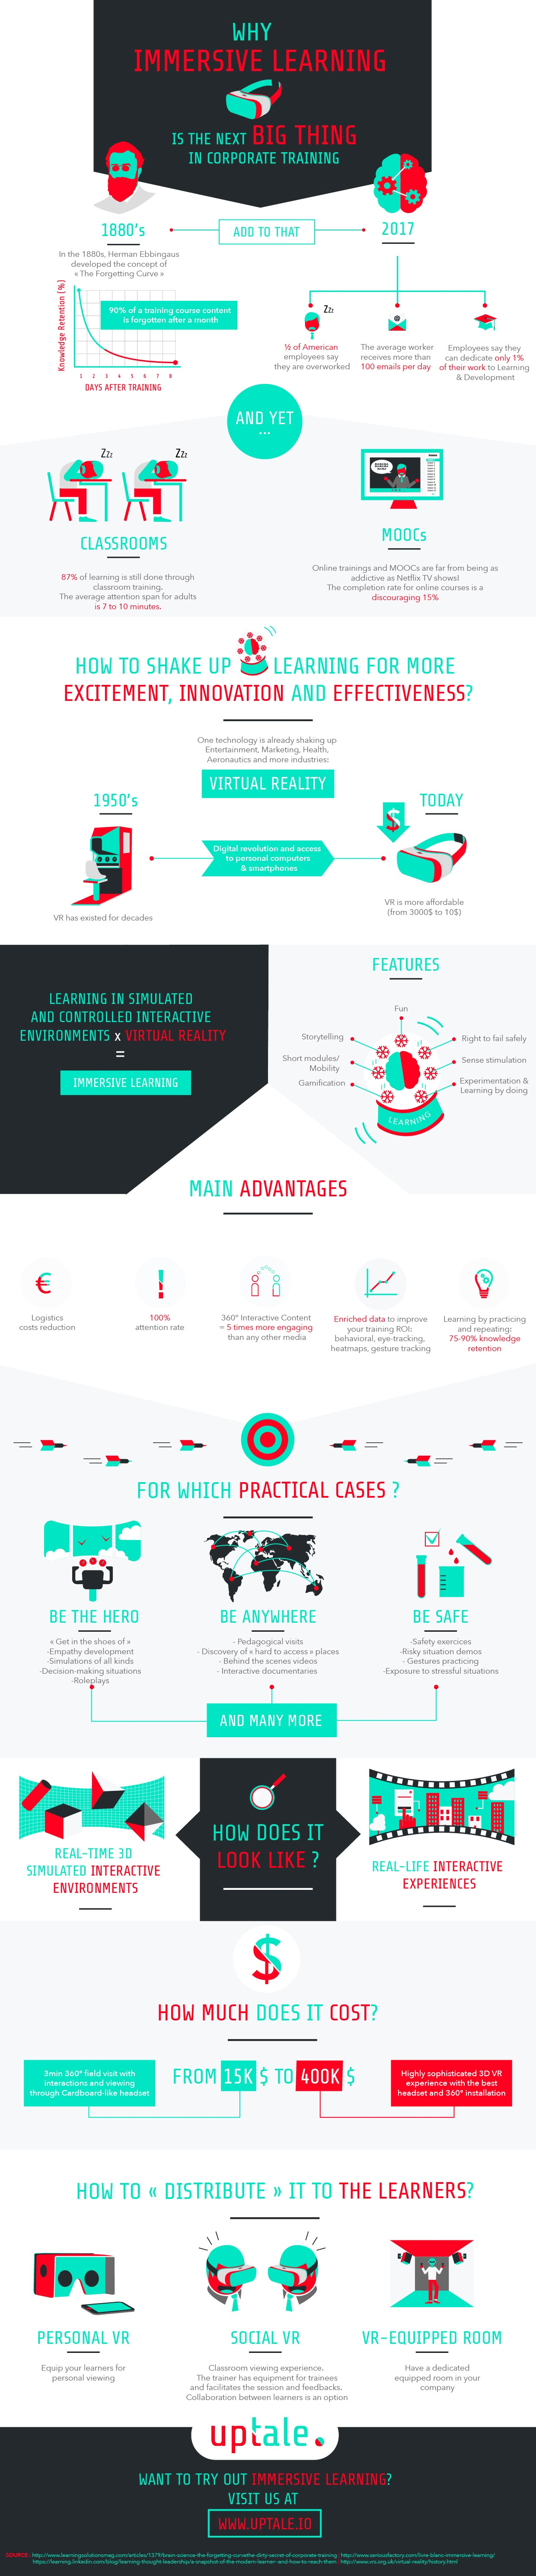 Immersive Learning in Corporate Training Infographic